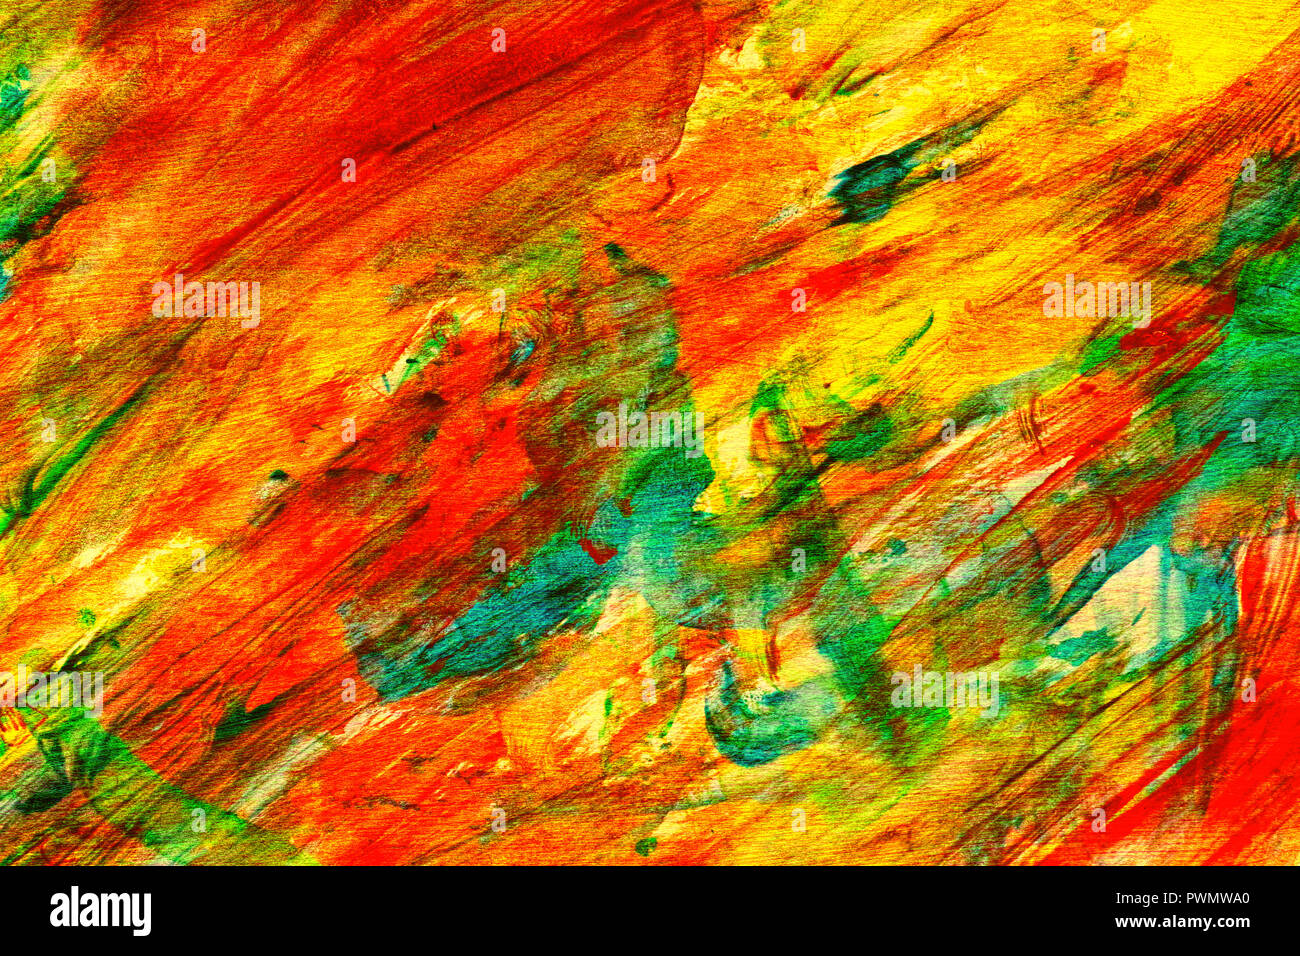 Hand Painted Abstract Orange Yellow Blue Brown Wet Wash